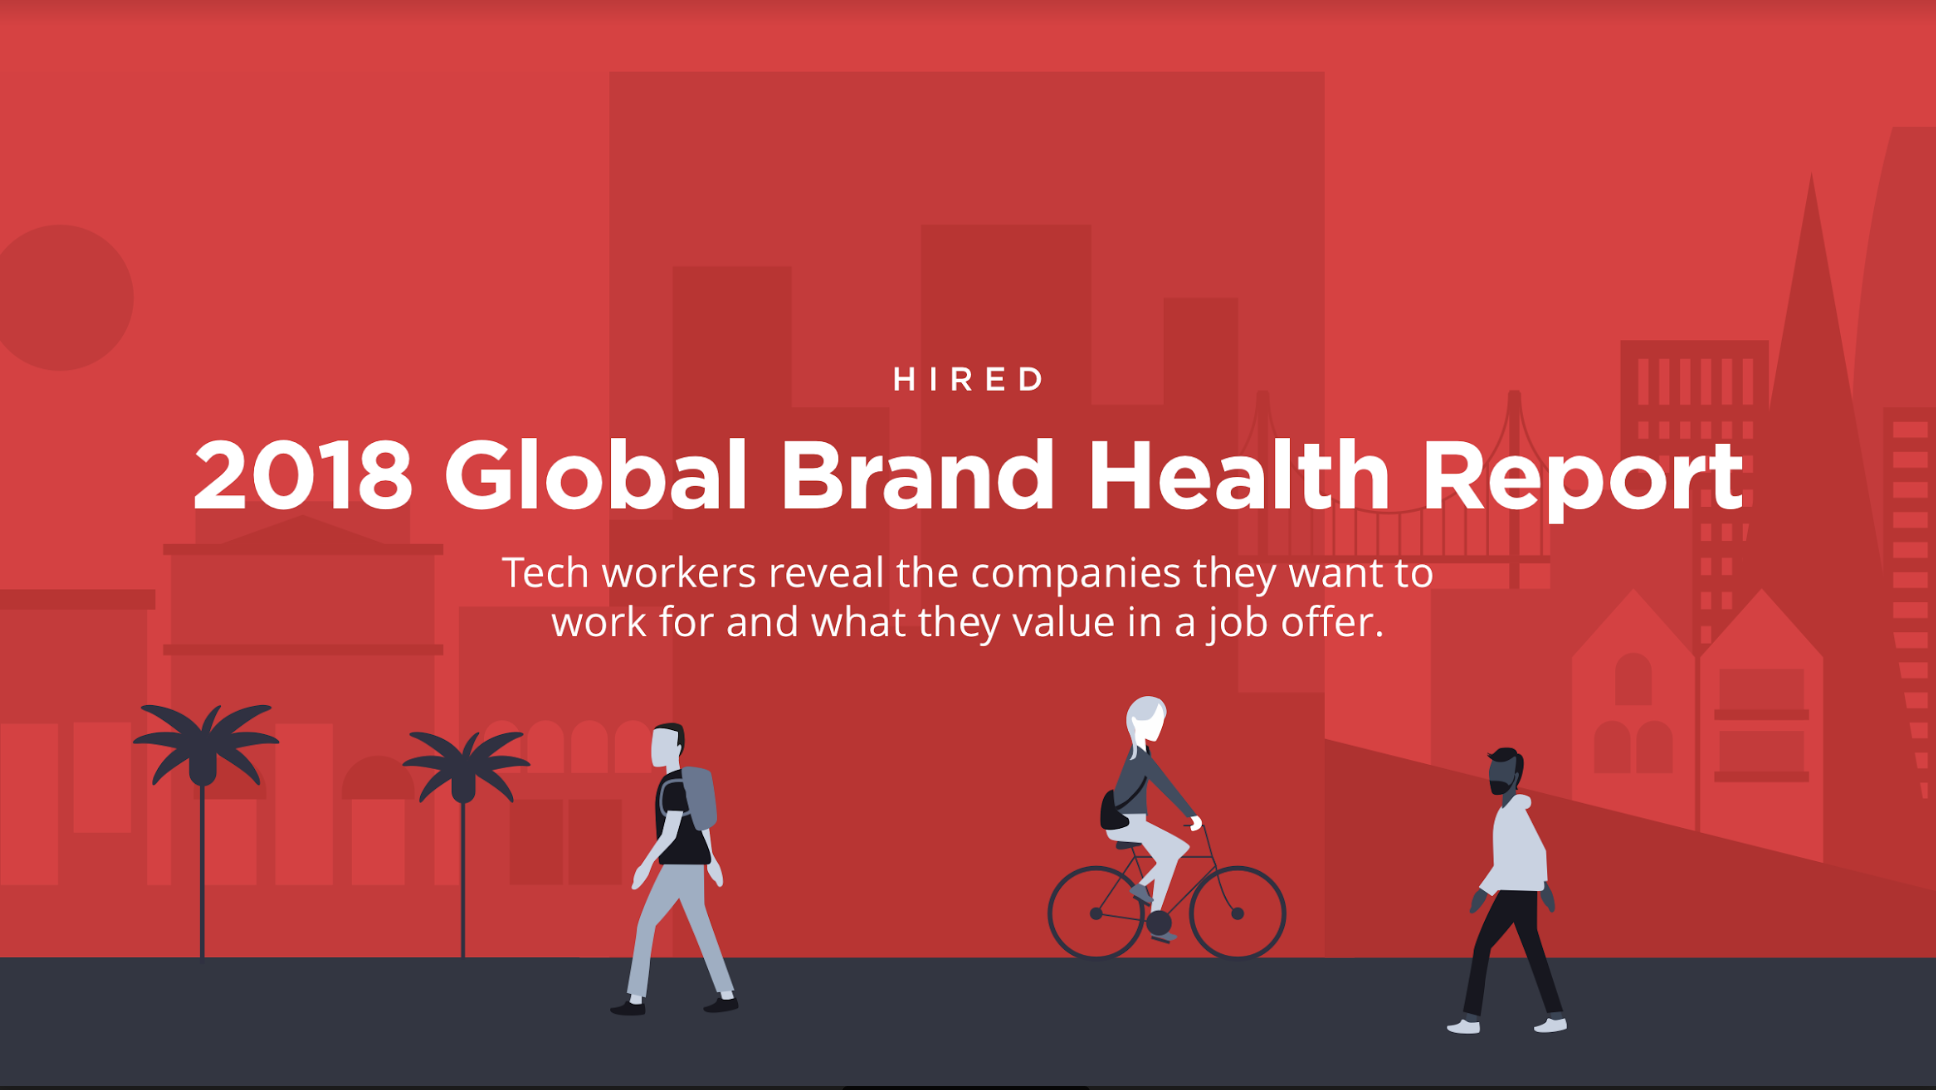 hired-releases-2018-global-brand-health-report